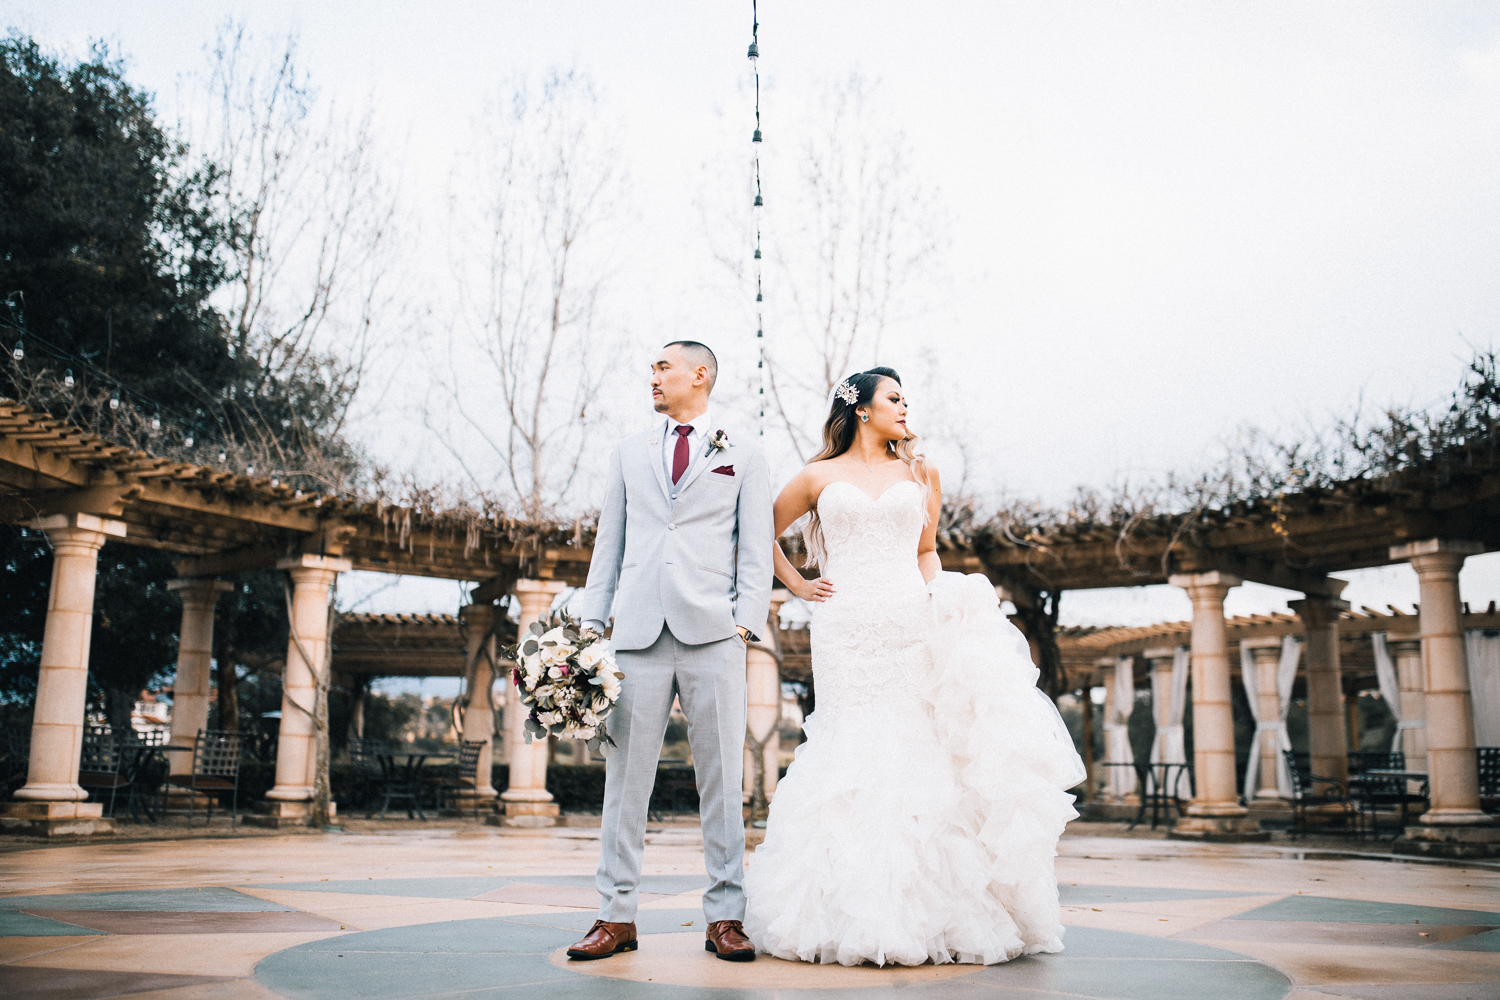 2019_01_ 202019.01.20 Santiago Wedding Blog Photos Edited For Web 0080.jpg